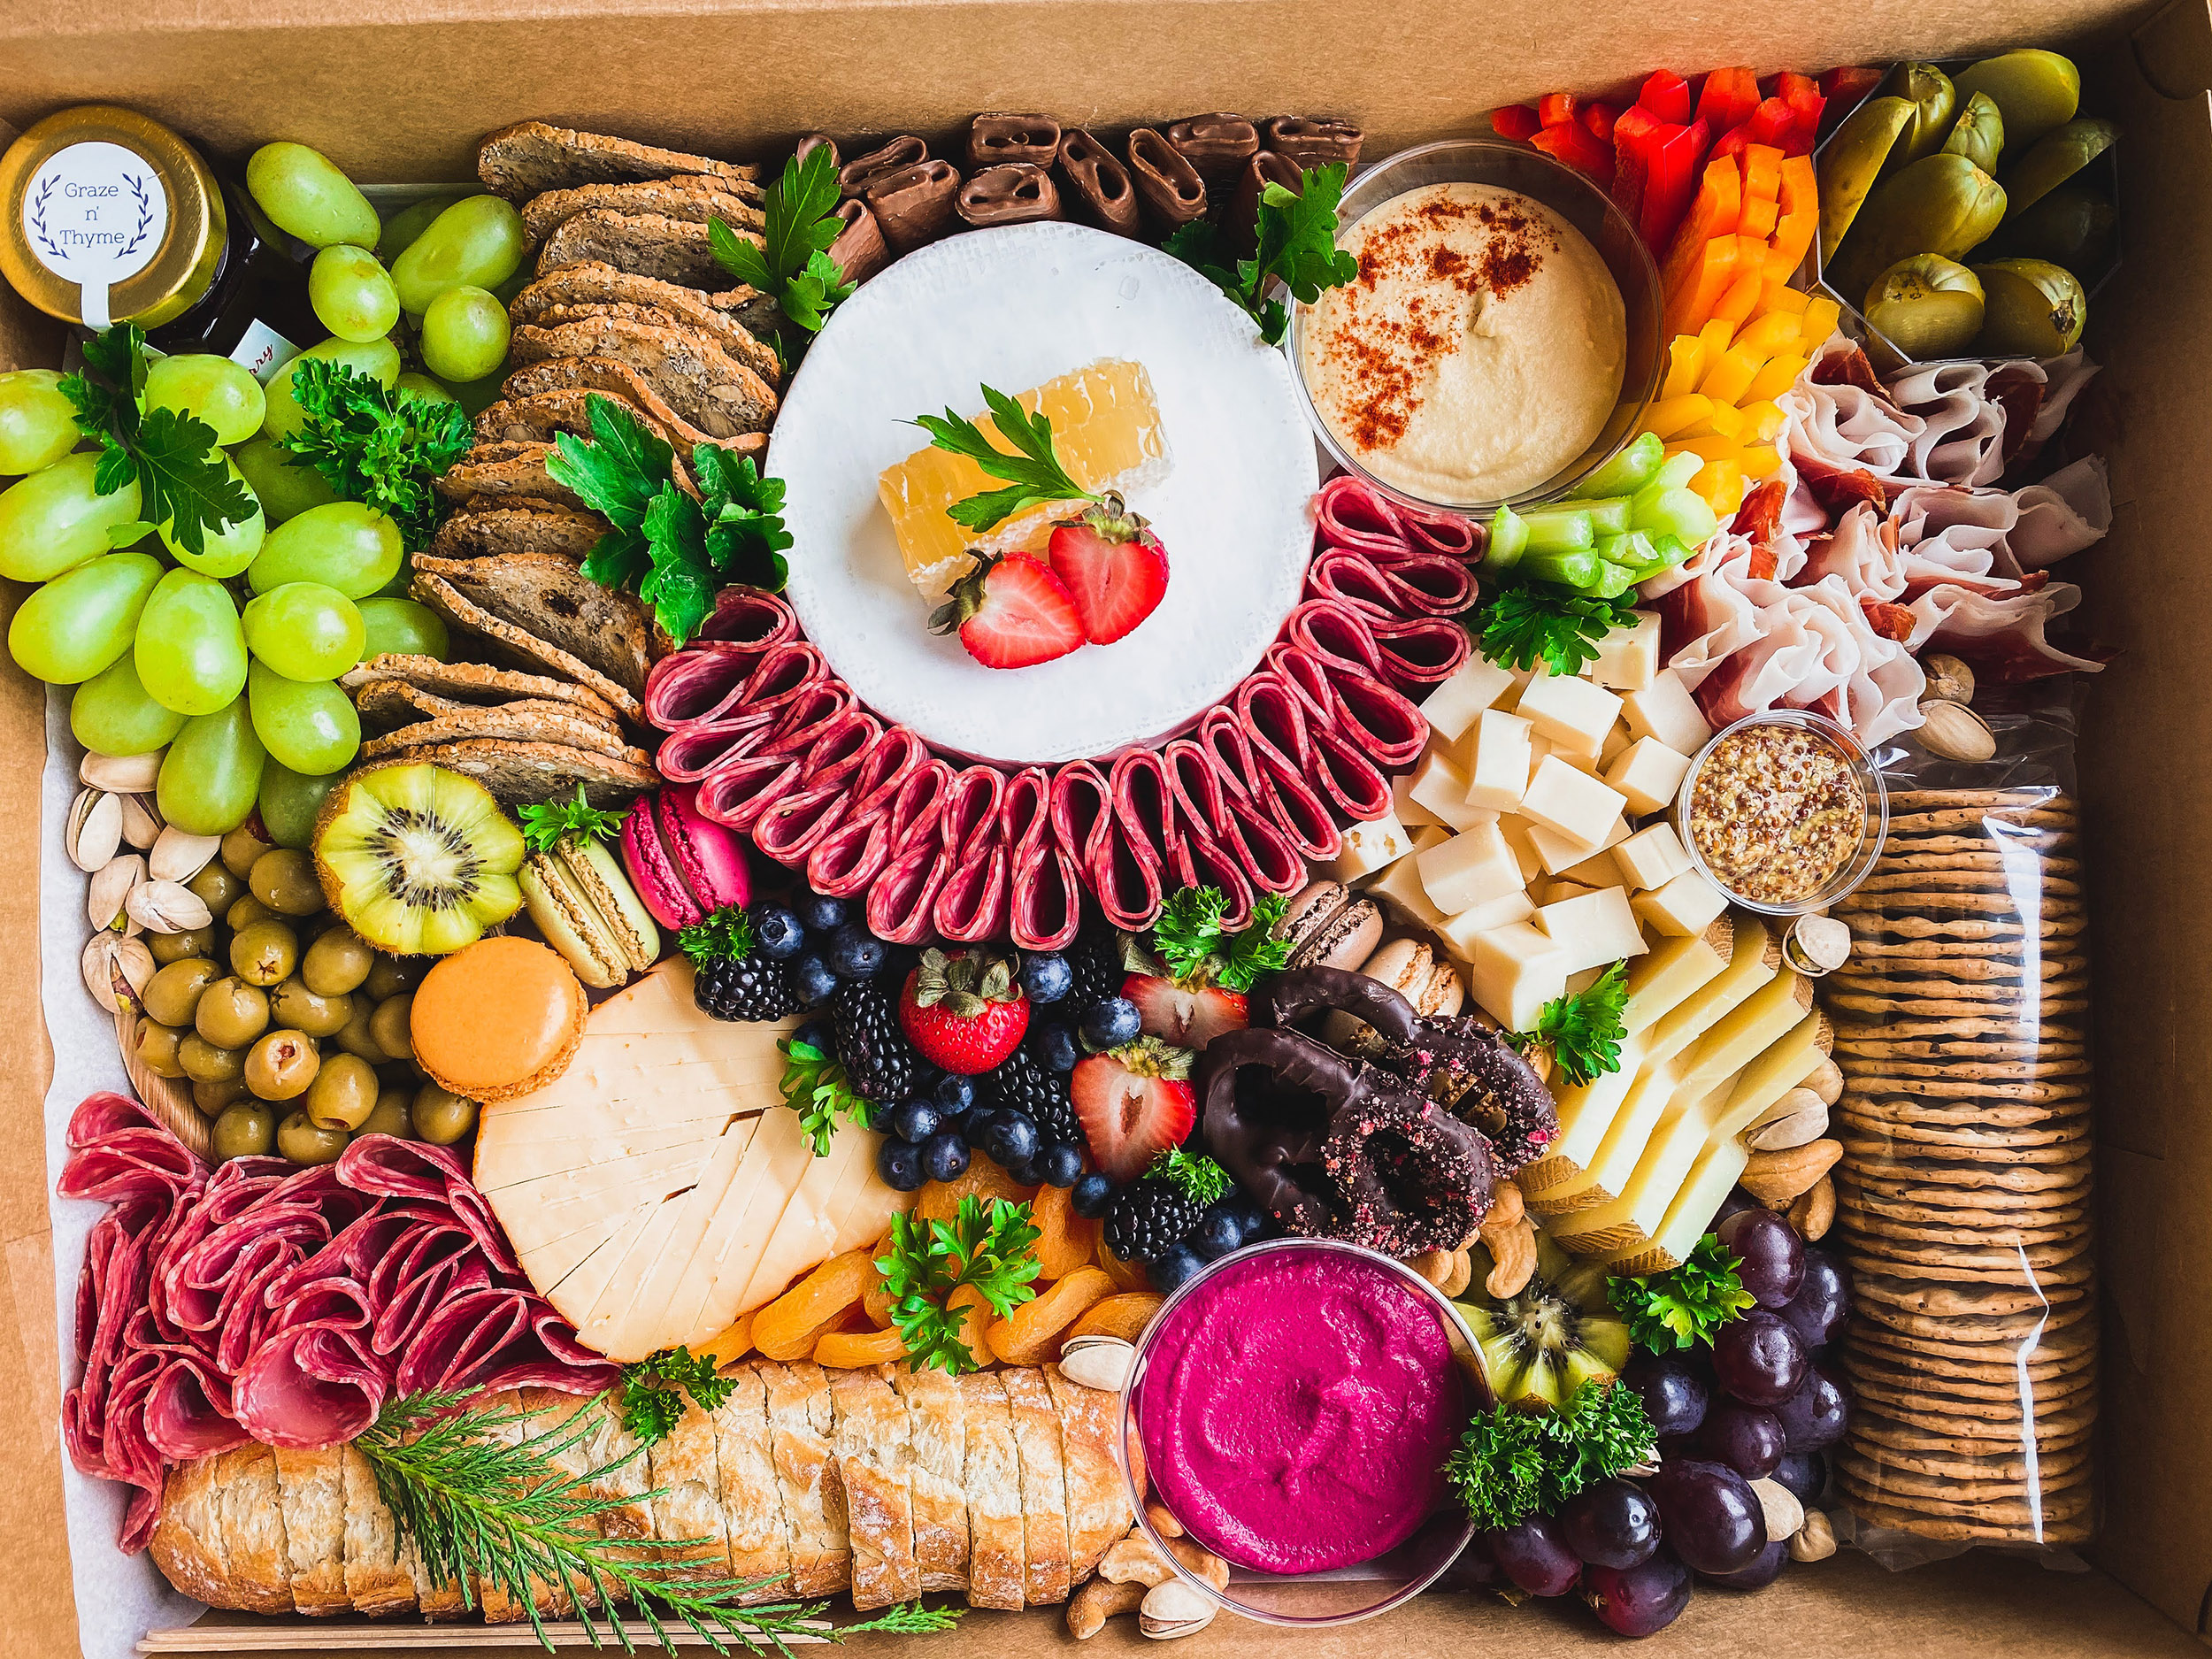 Graze box filled with delicious meats, cheese, fruits, veggies, nuts, bread, honey, and handmade dips